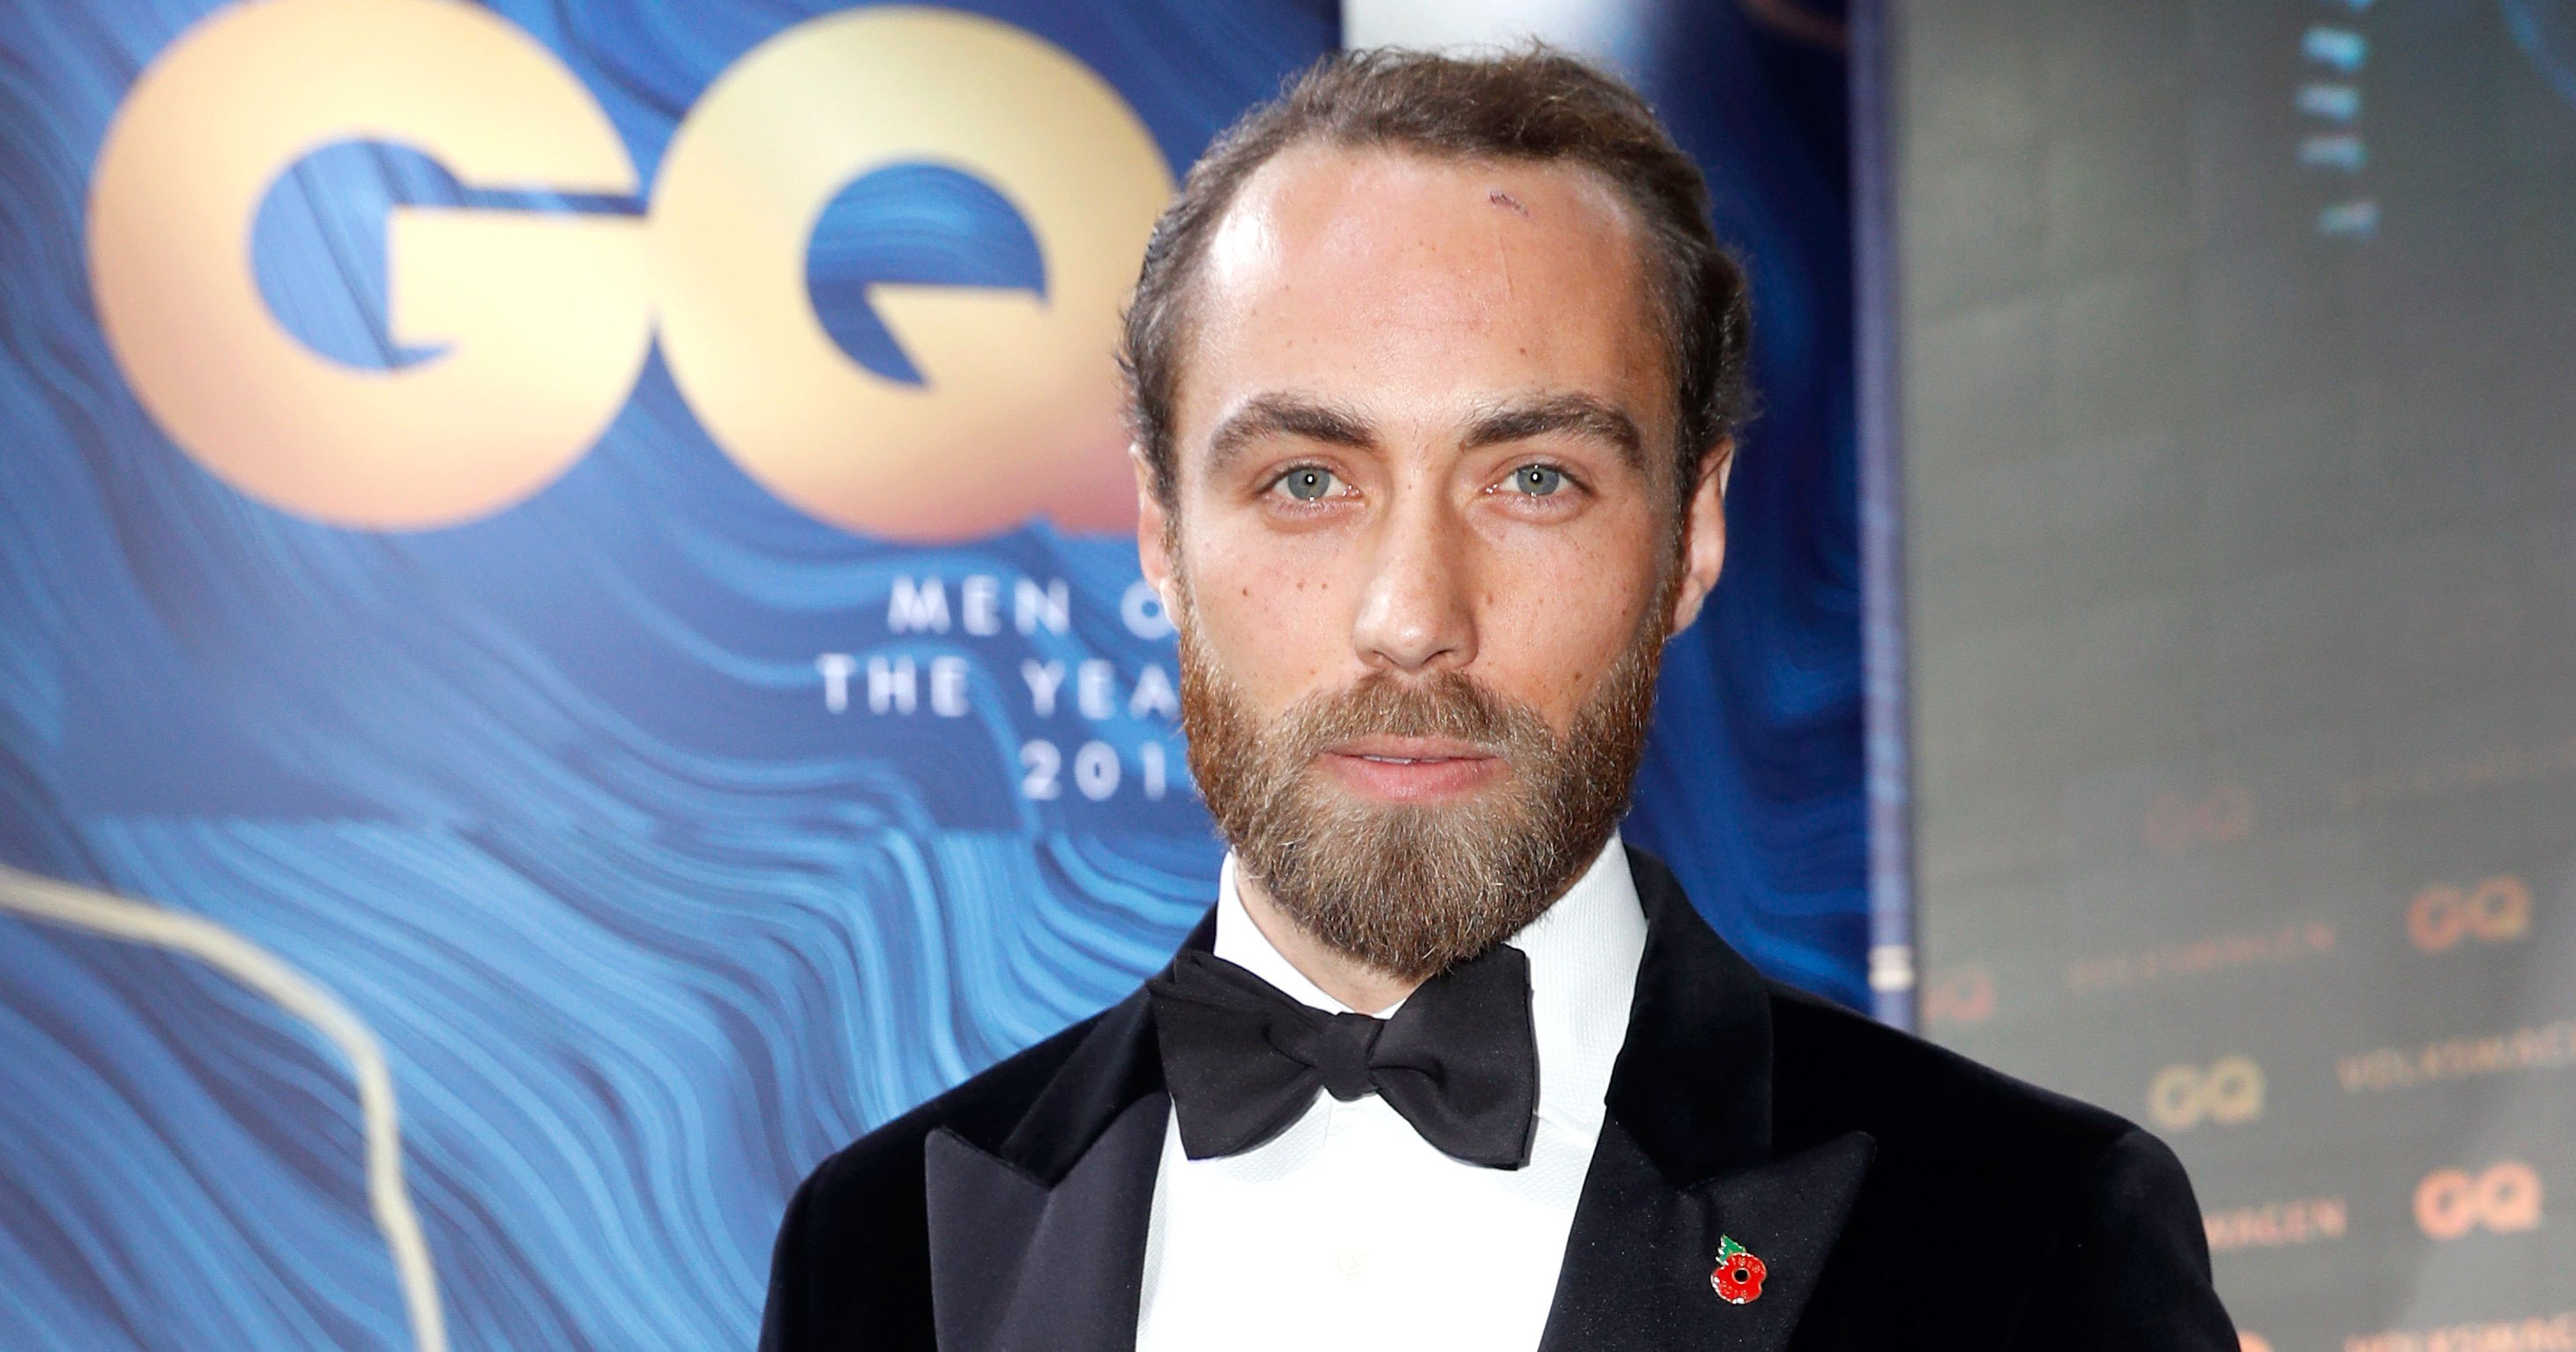 Duchess Kate's Brother James Middleton Says She Supported Him in Battle With Depression